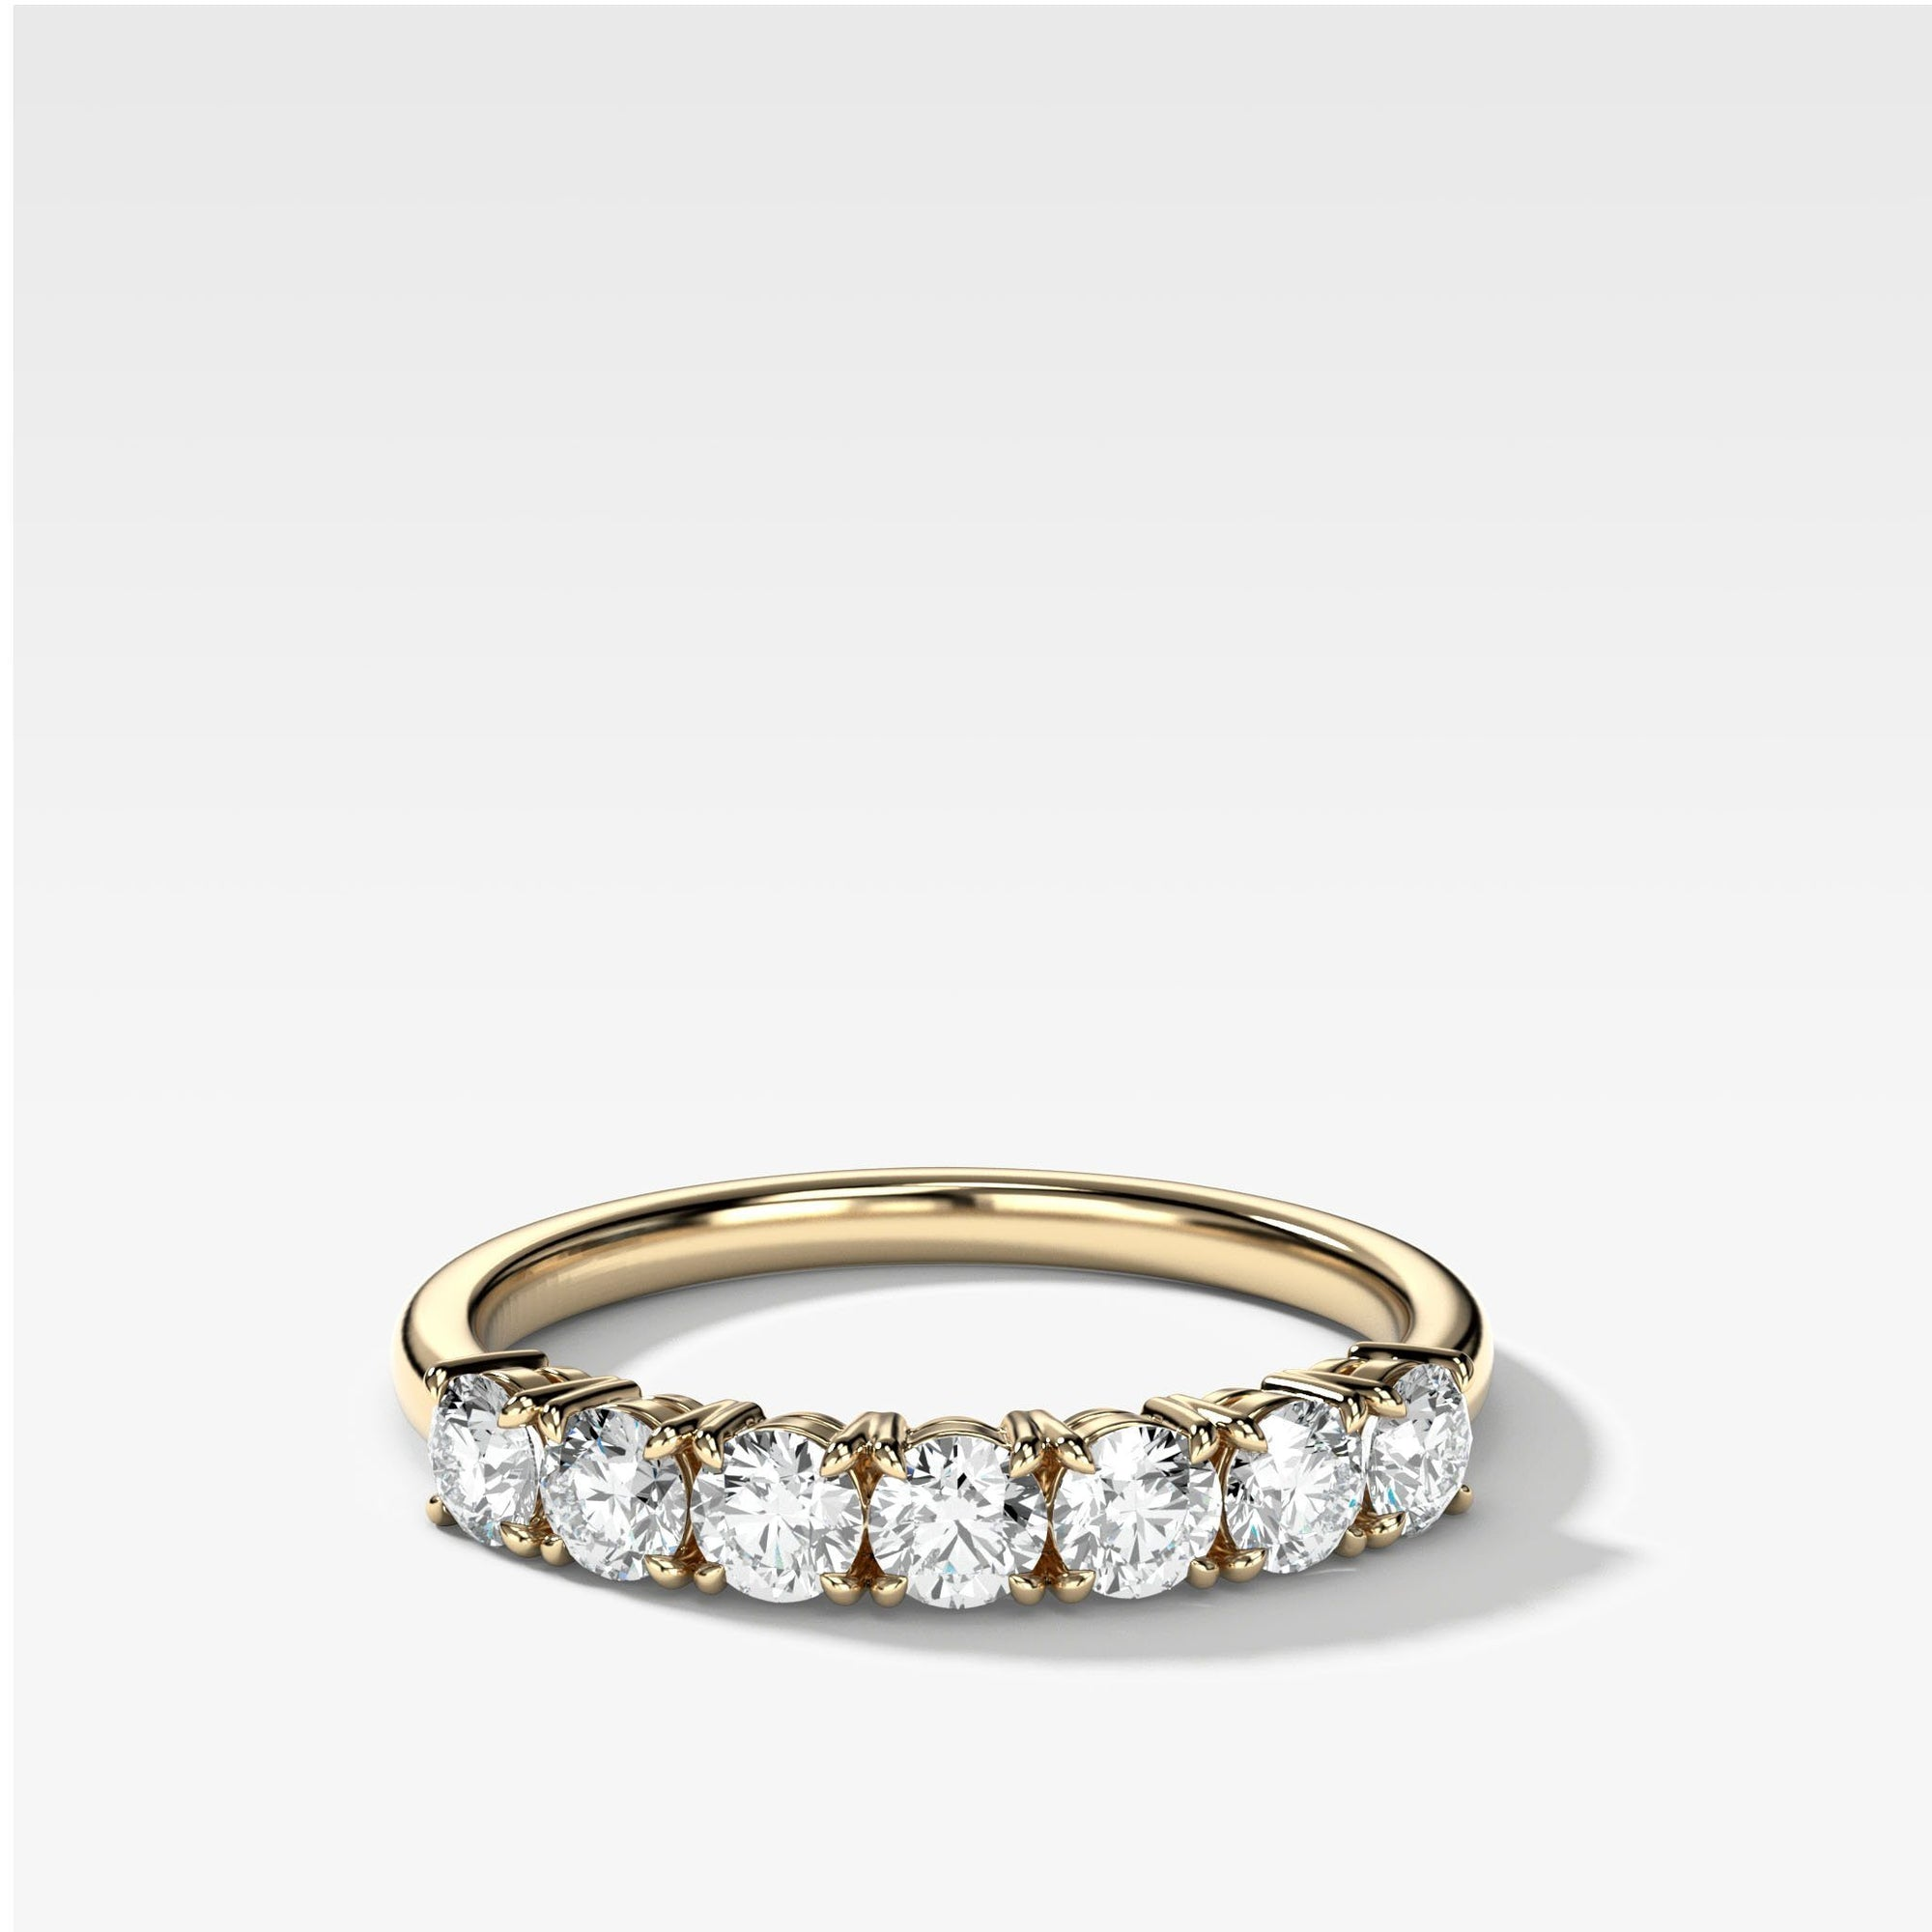 Claw Diamond Band: Standard Seven Stones available in Yellow Gold by Good Stone